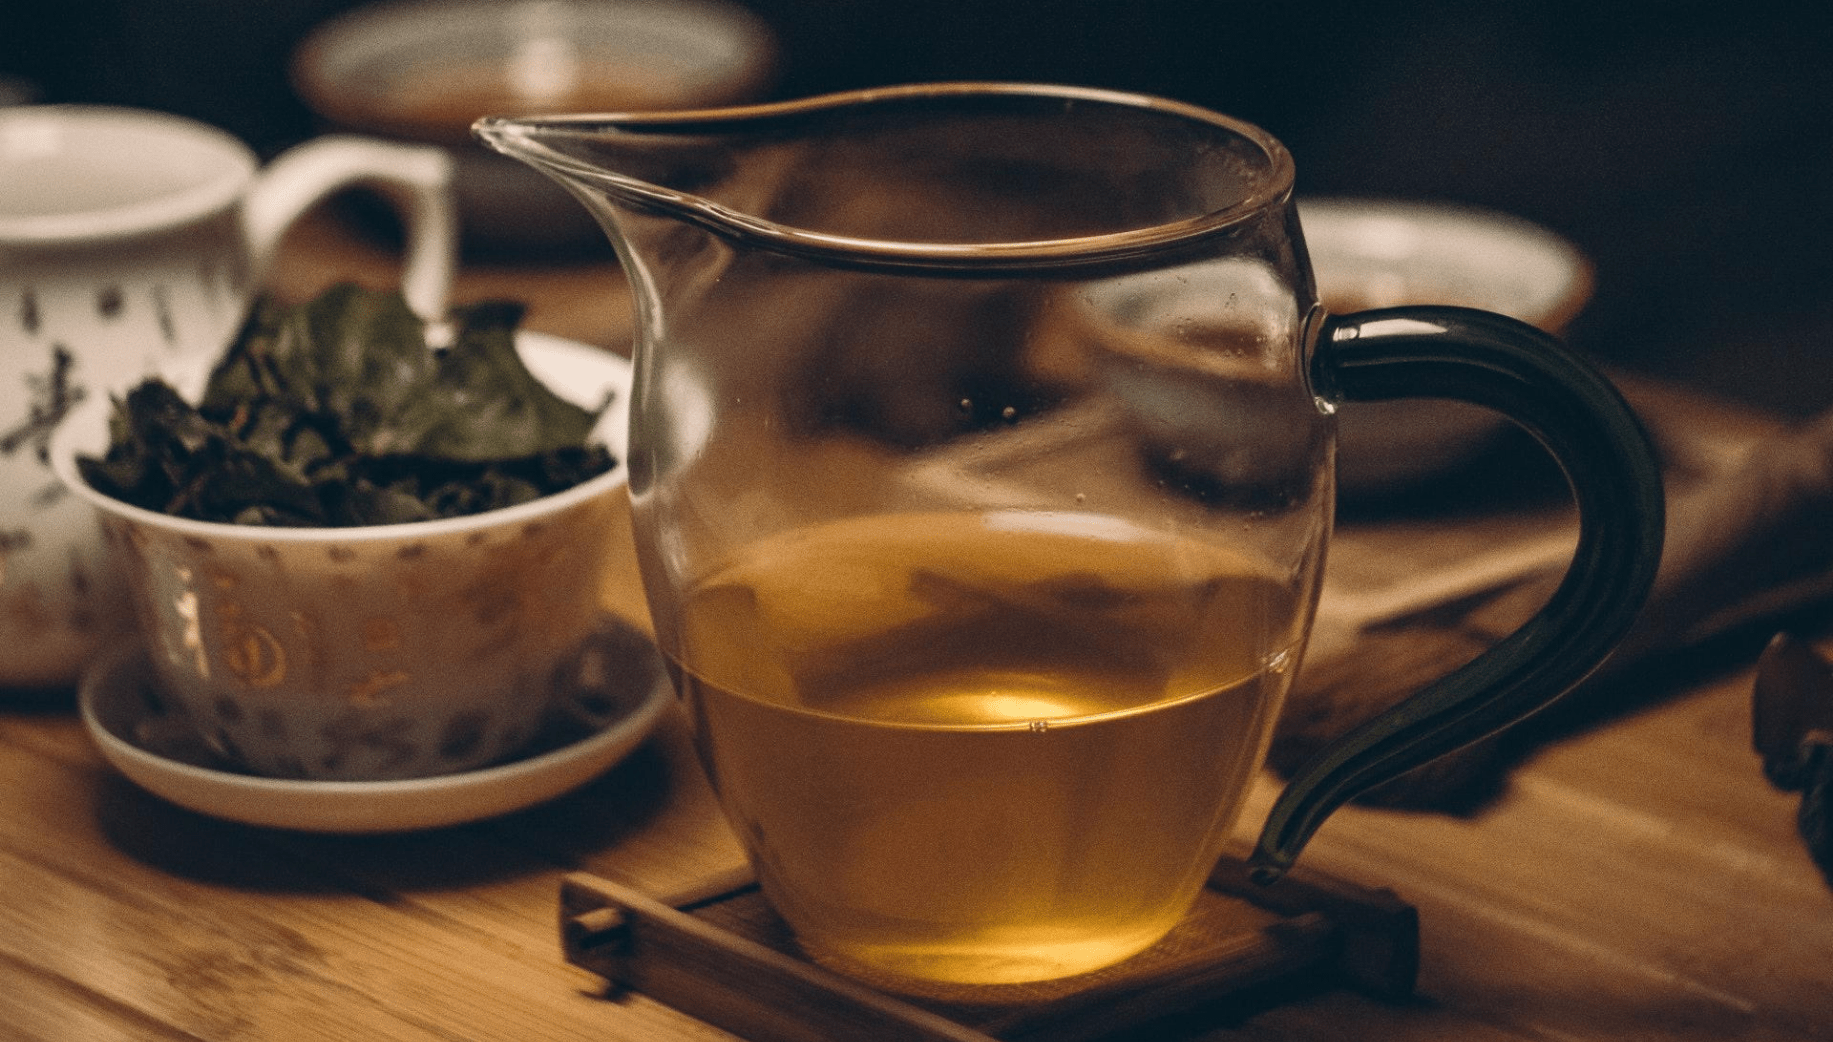 Green tea is a common drink in Meghalaya